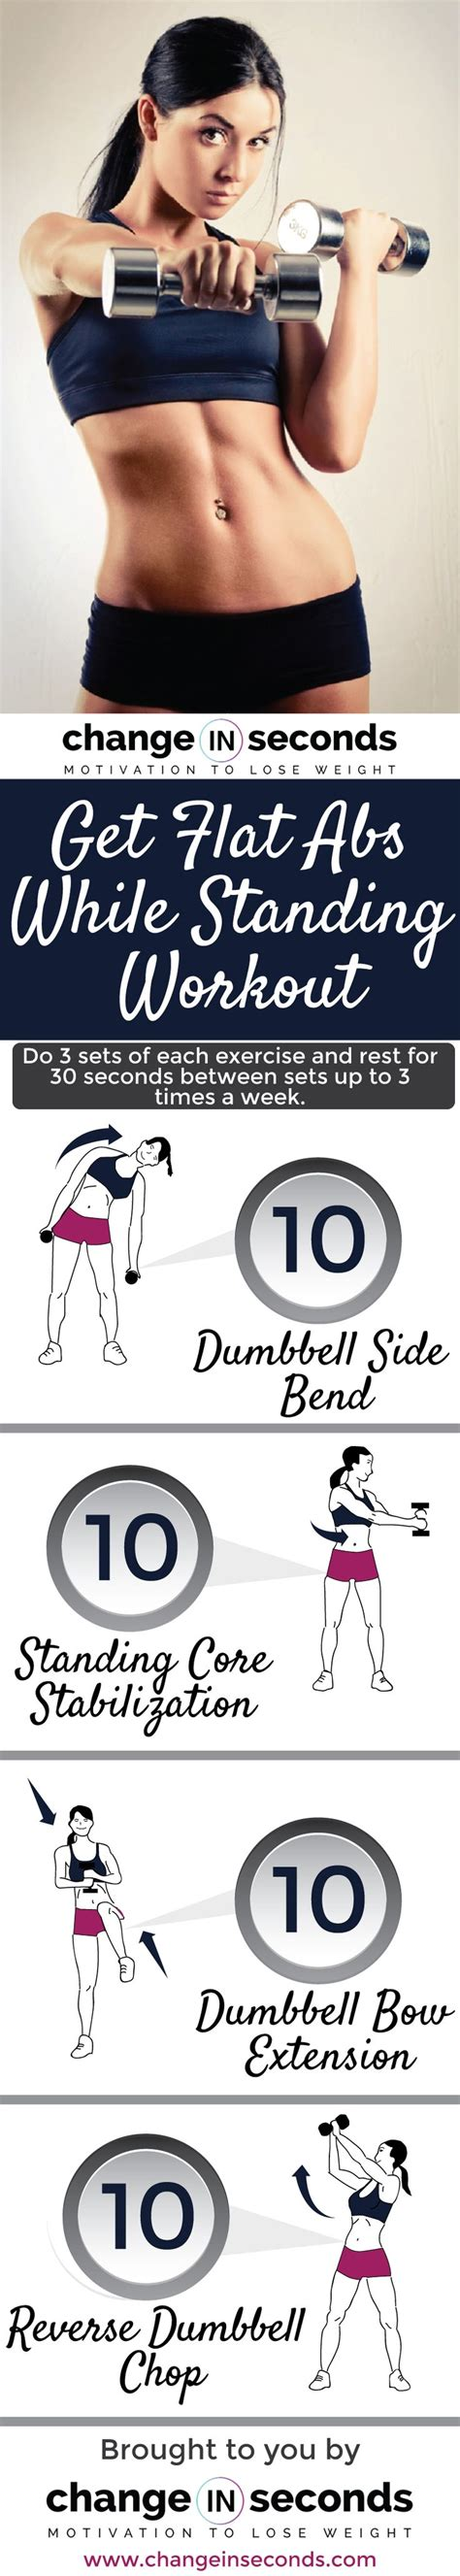 images  workouts  women  pinterest